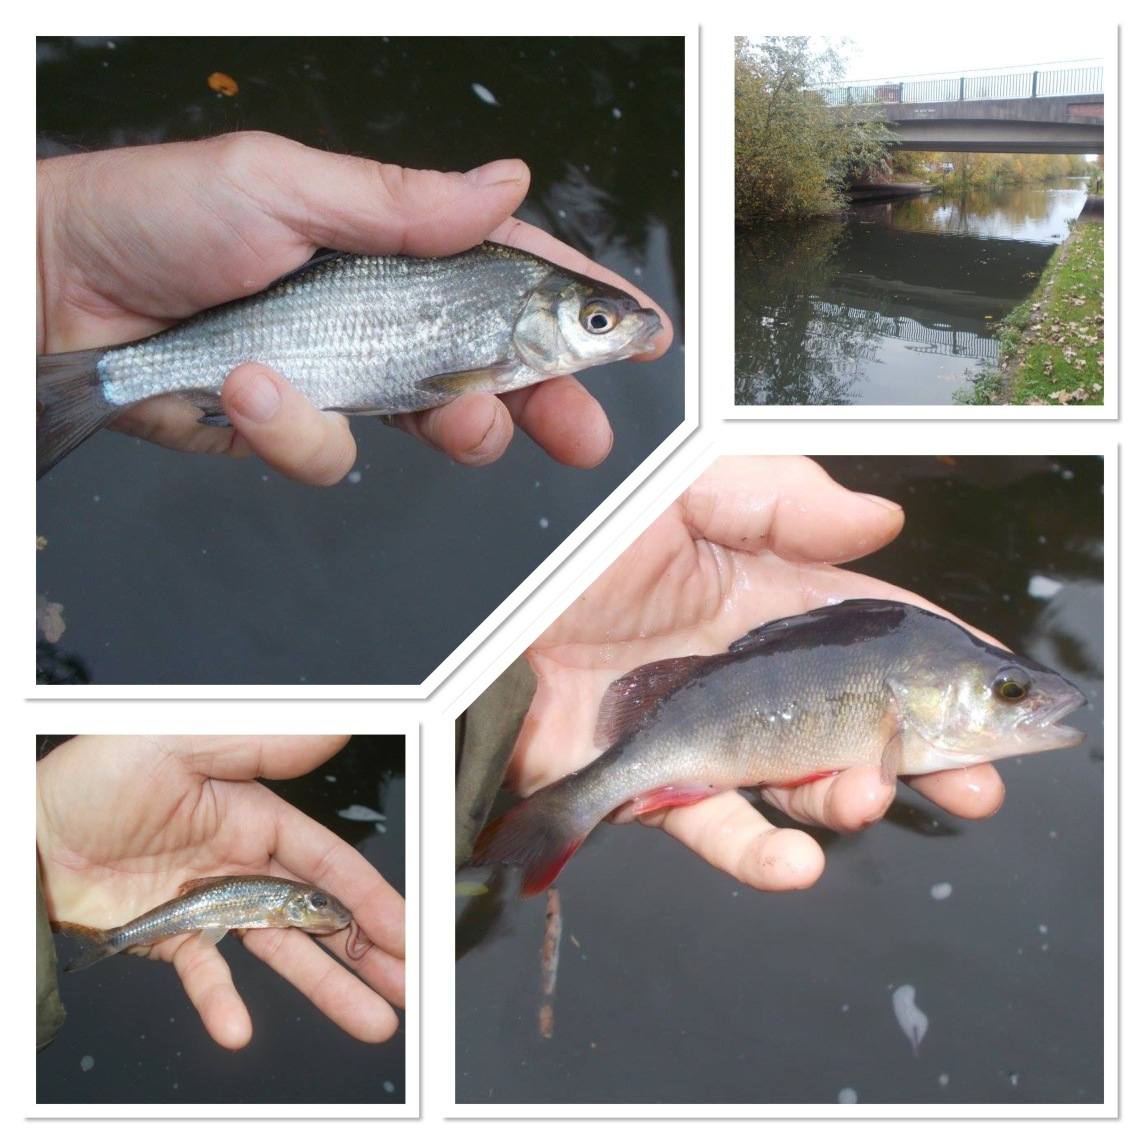 As well as perch, other species took the bait